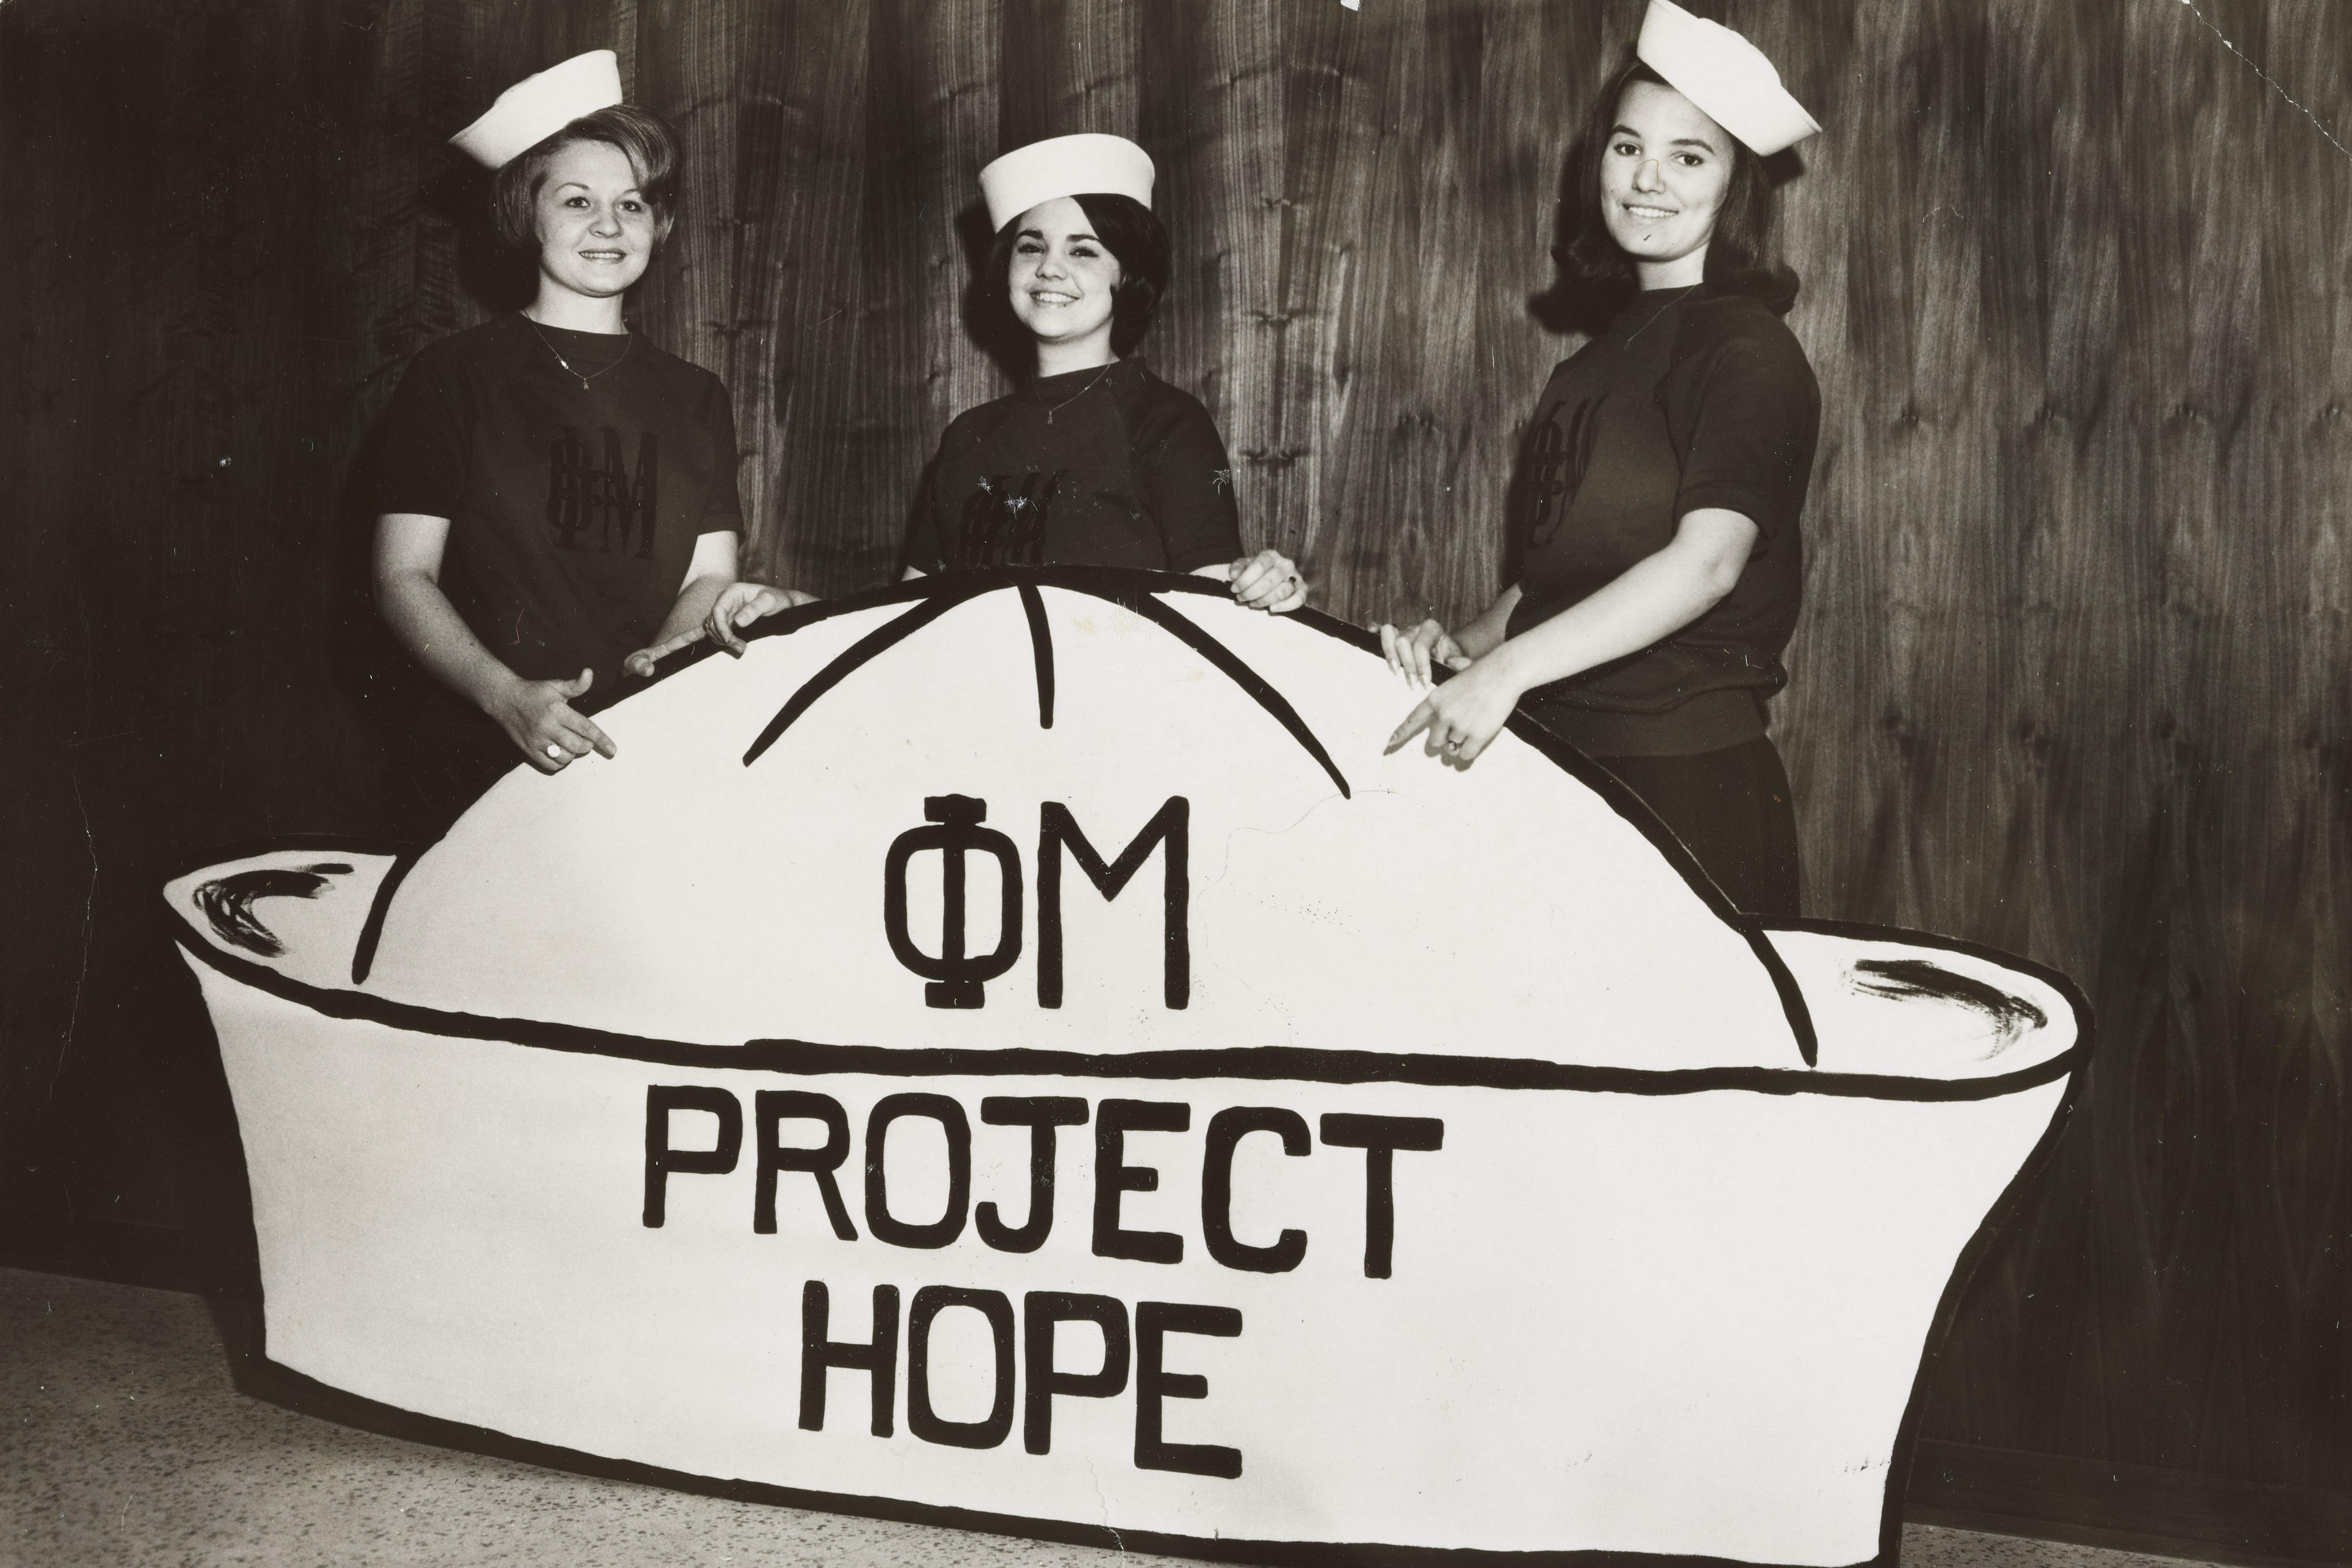 Project HOPE is Adopted as a National Philanthropy, 1963 Image